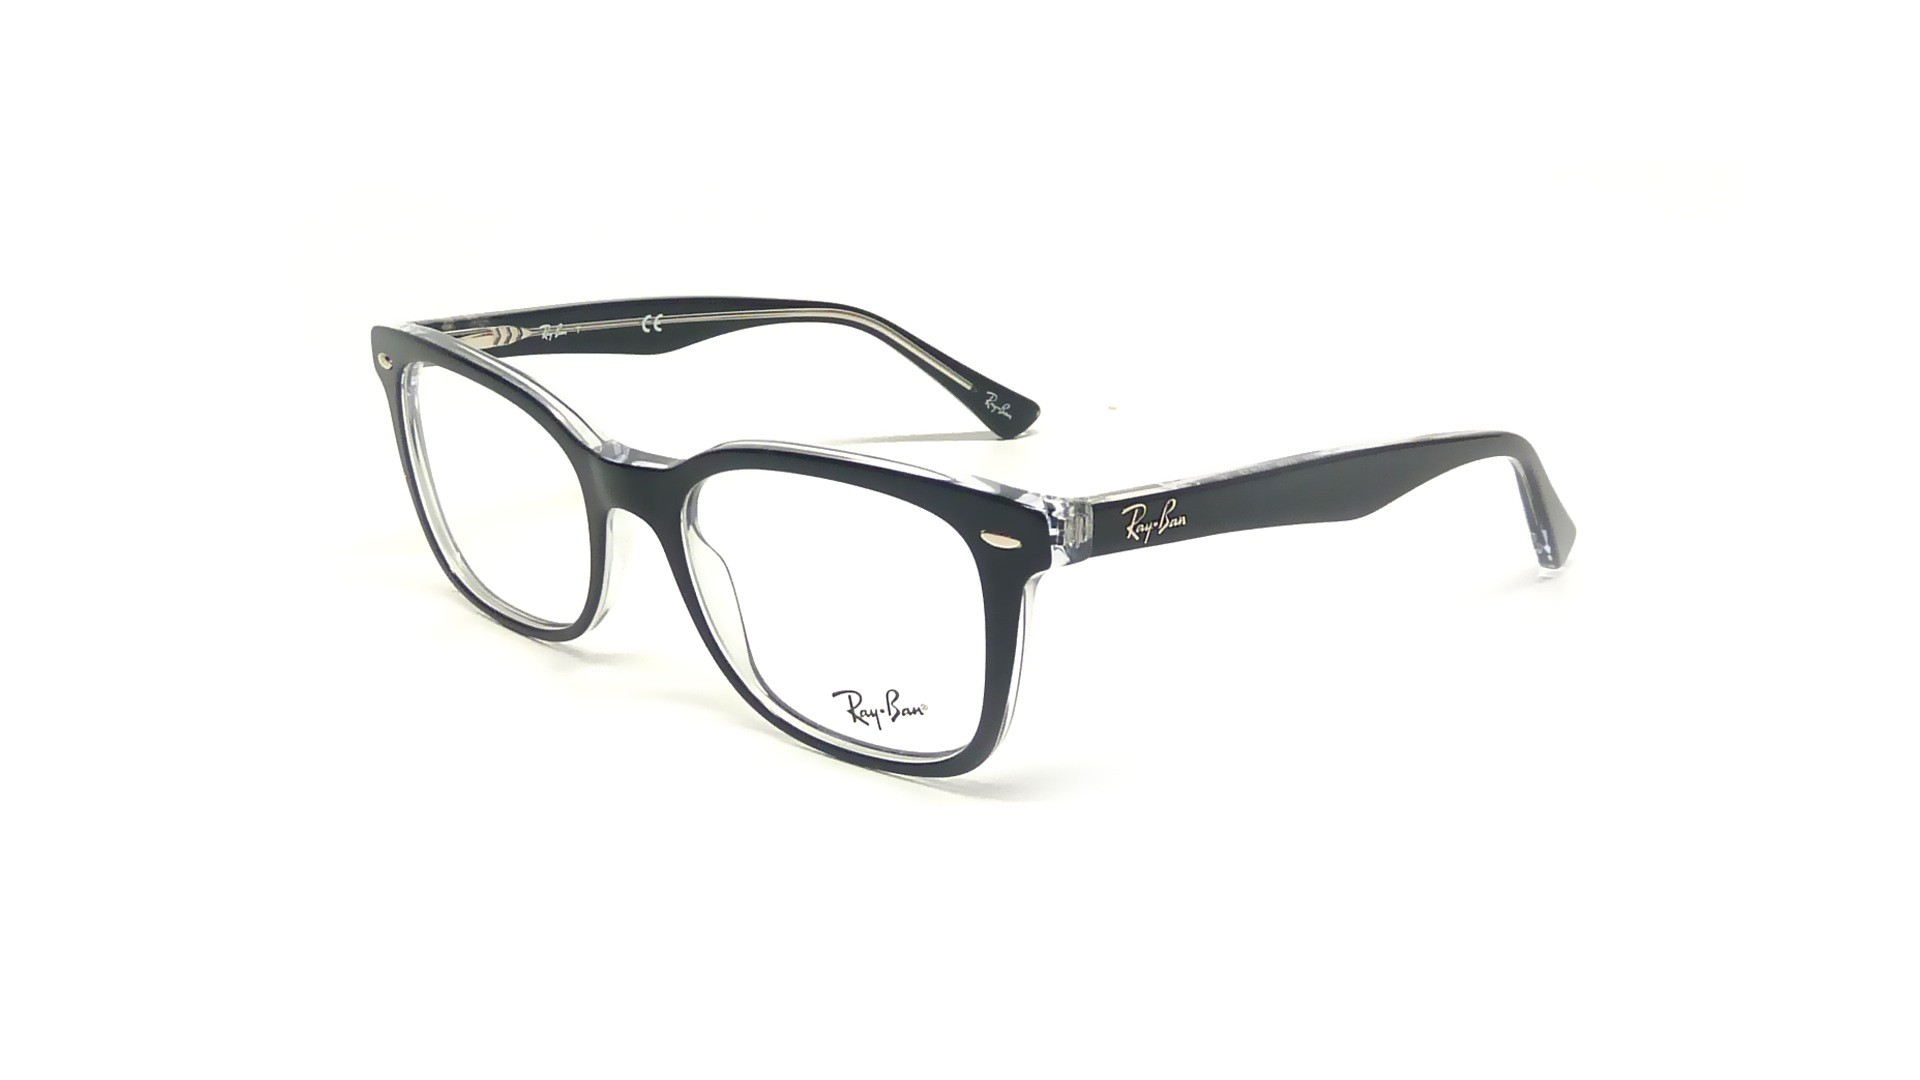 ca9a854bd5 Ray Ban Rx5309 5219 Blue